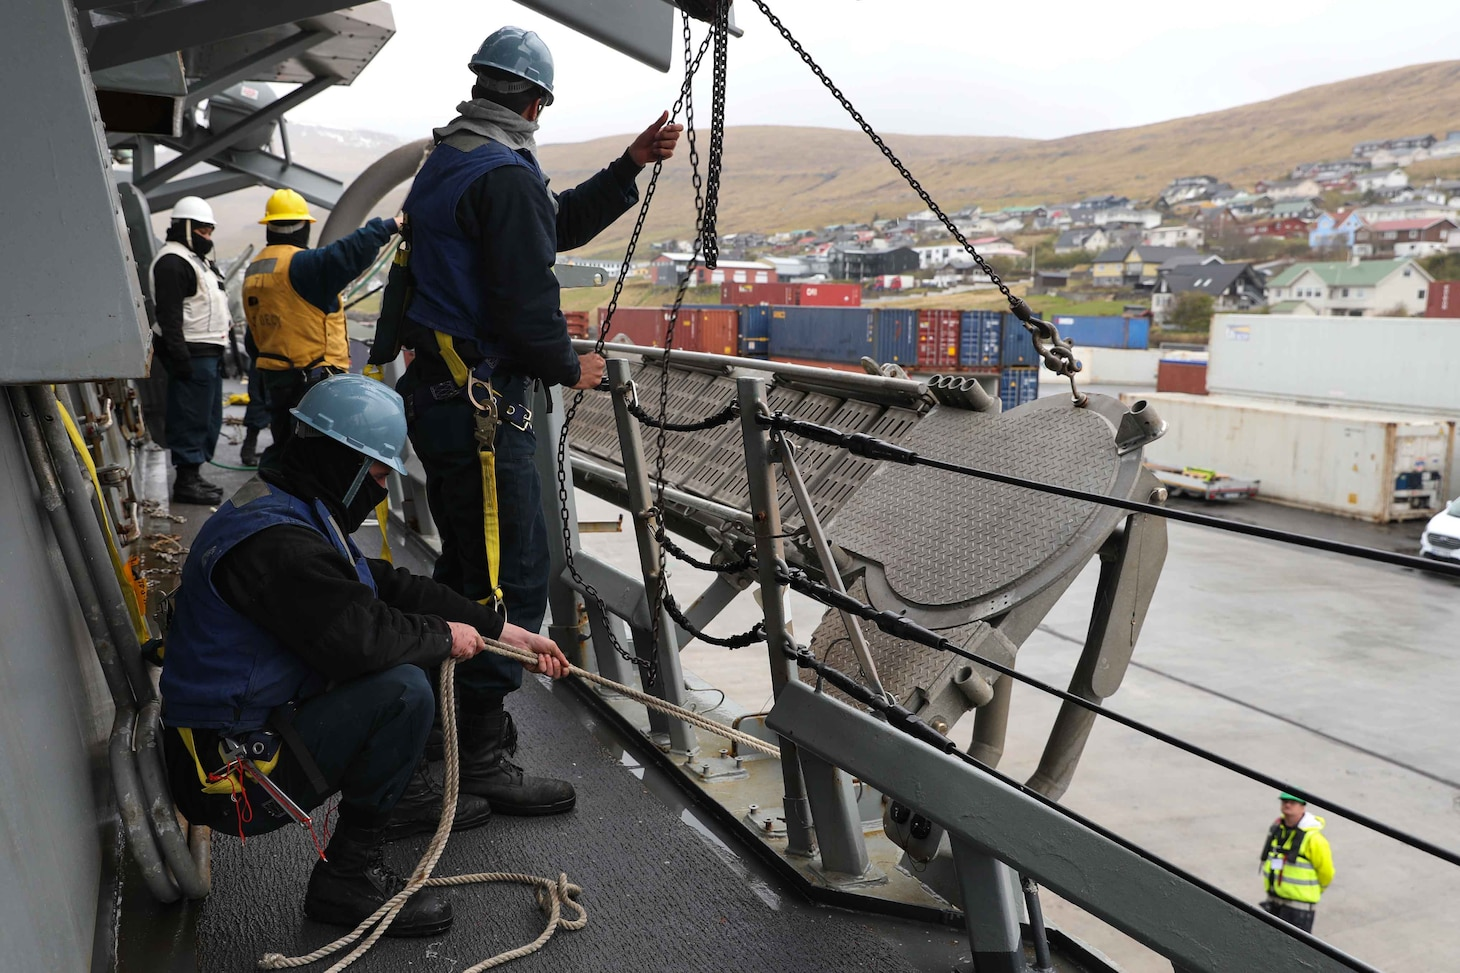 Sailors stationed aboard the Arleigh Burke-class guided-missile destroyer USS Ross (DDG 71) lower an accomodation ladder to the pier in port in the Faroe Islands, May 15, 2021.